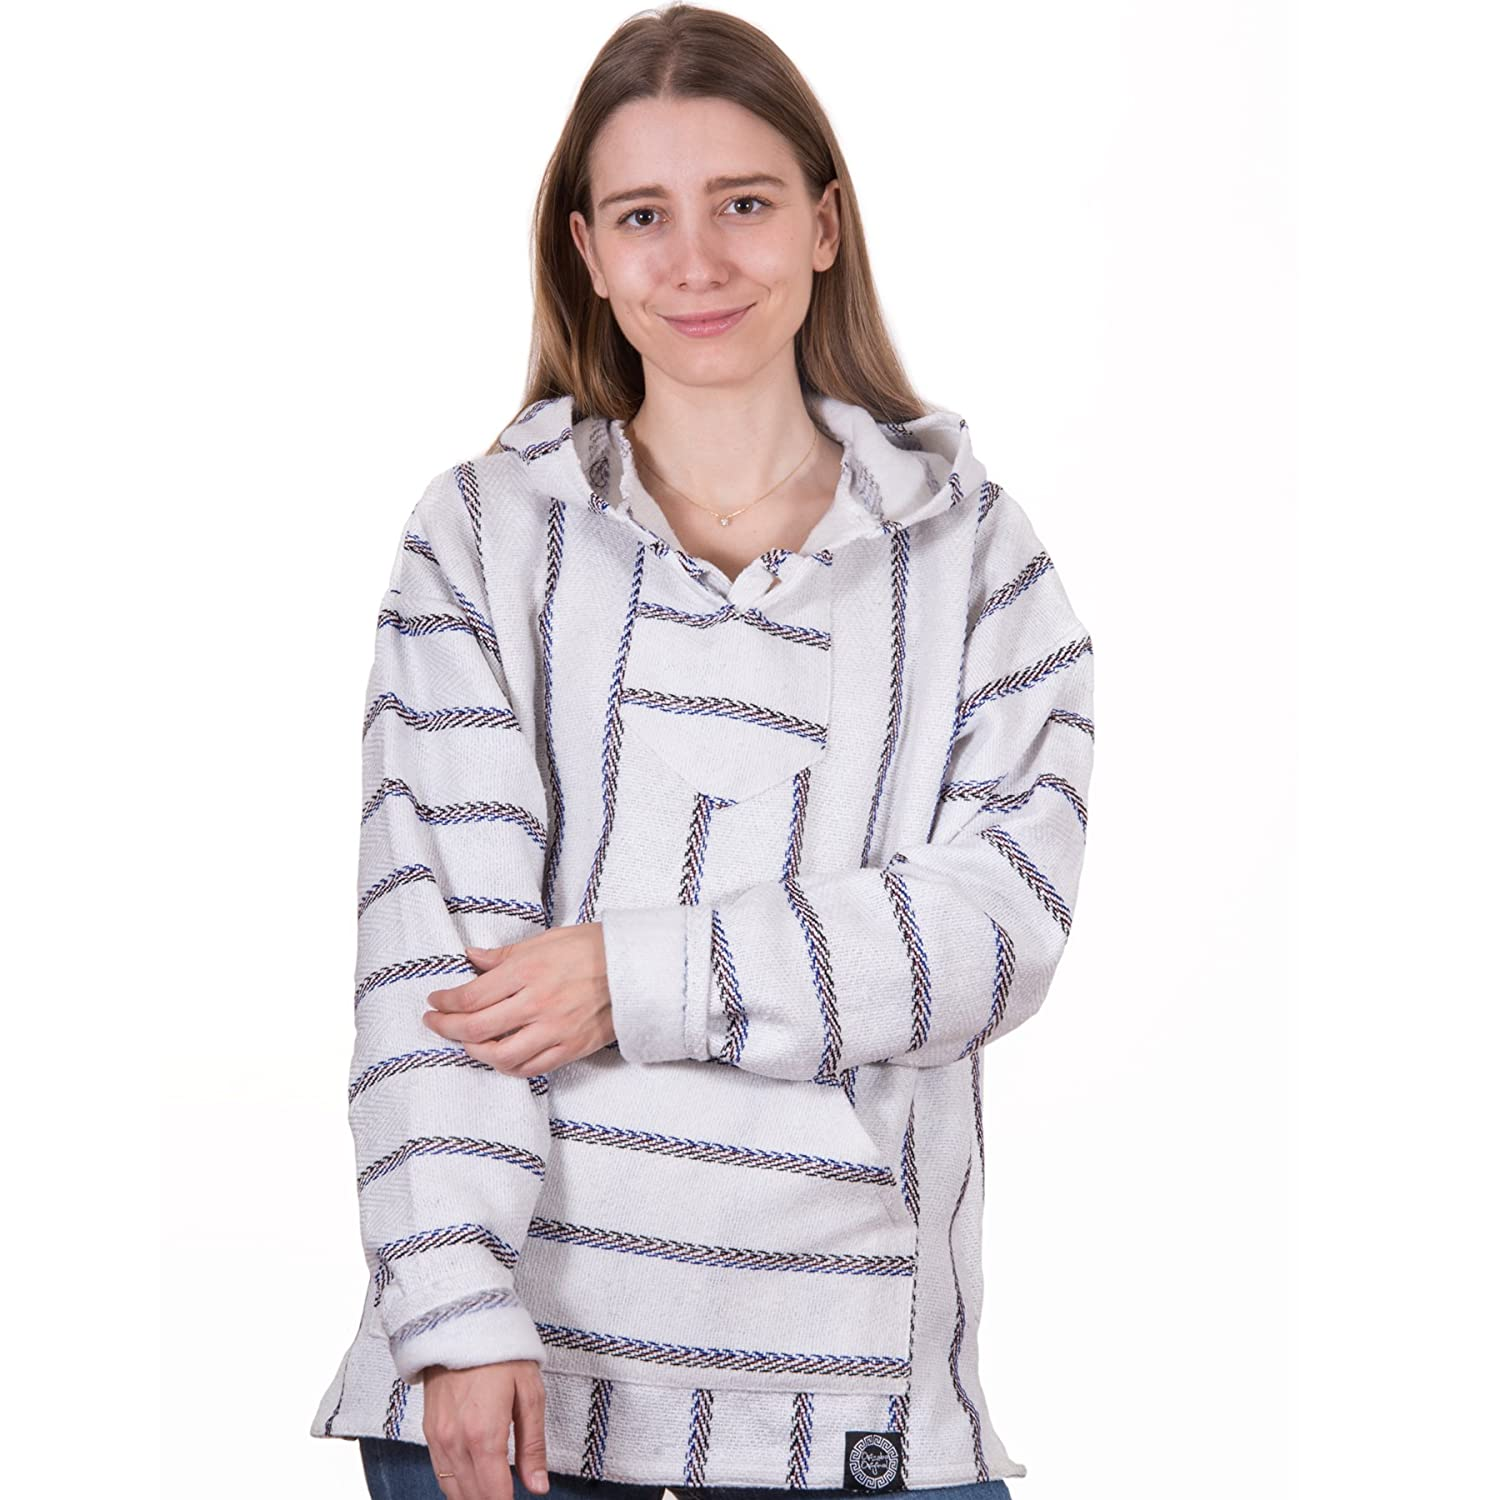 Orizaba Original Baja Hoodie | Drug Rug | Mexican Sweatshirt | 26 Colors | S-XXL